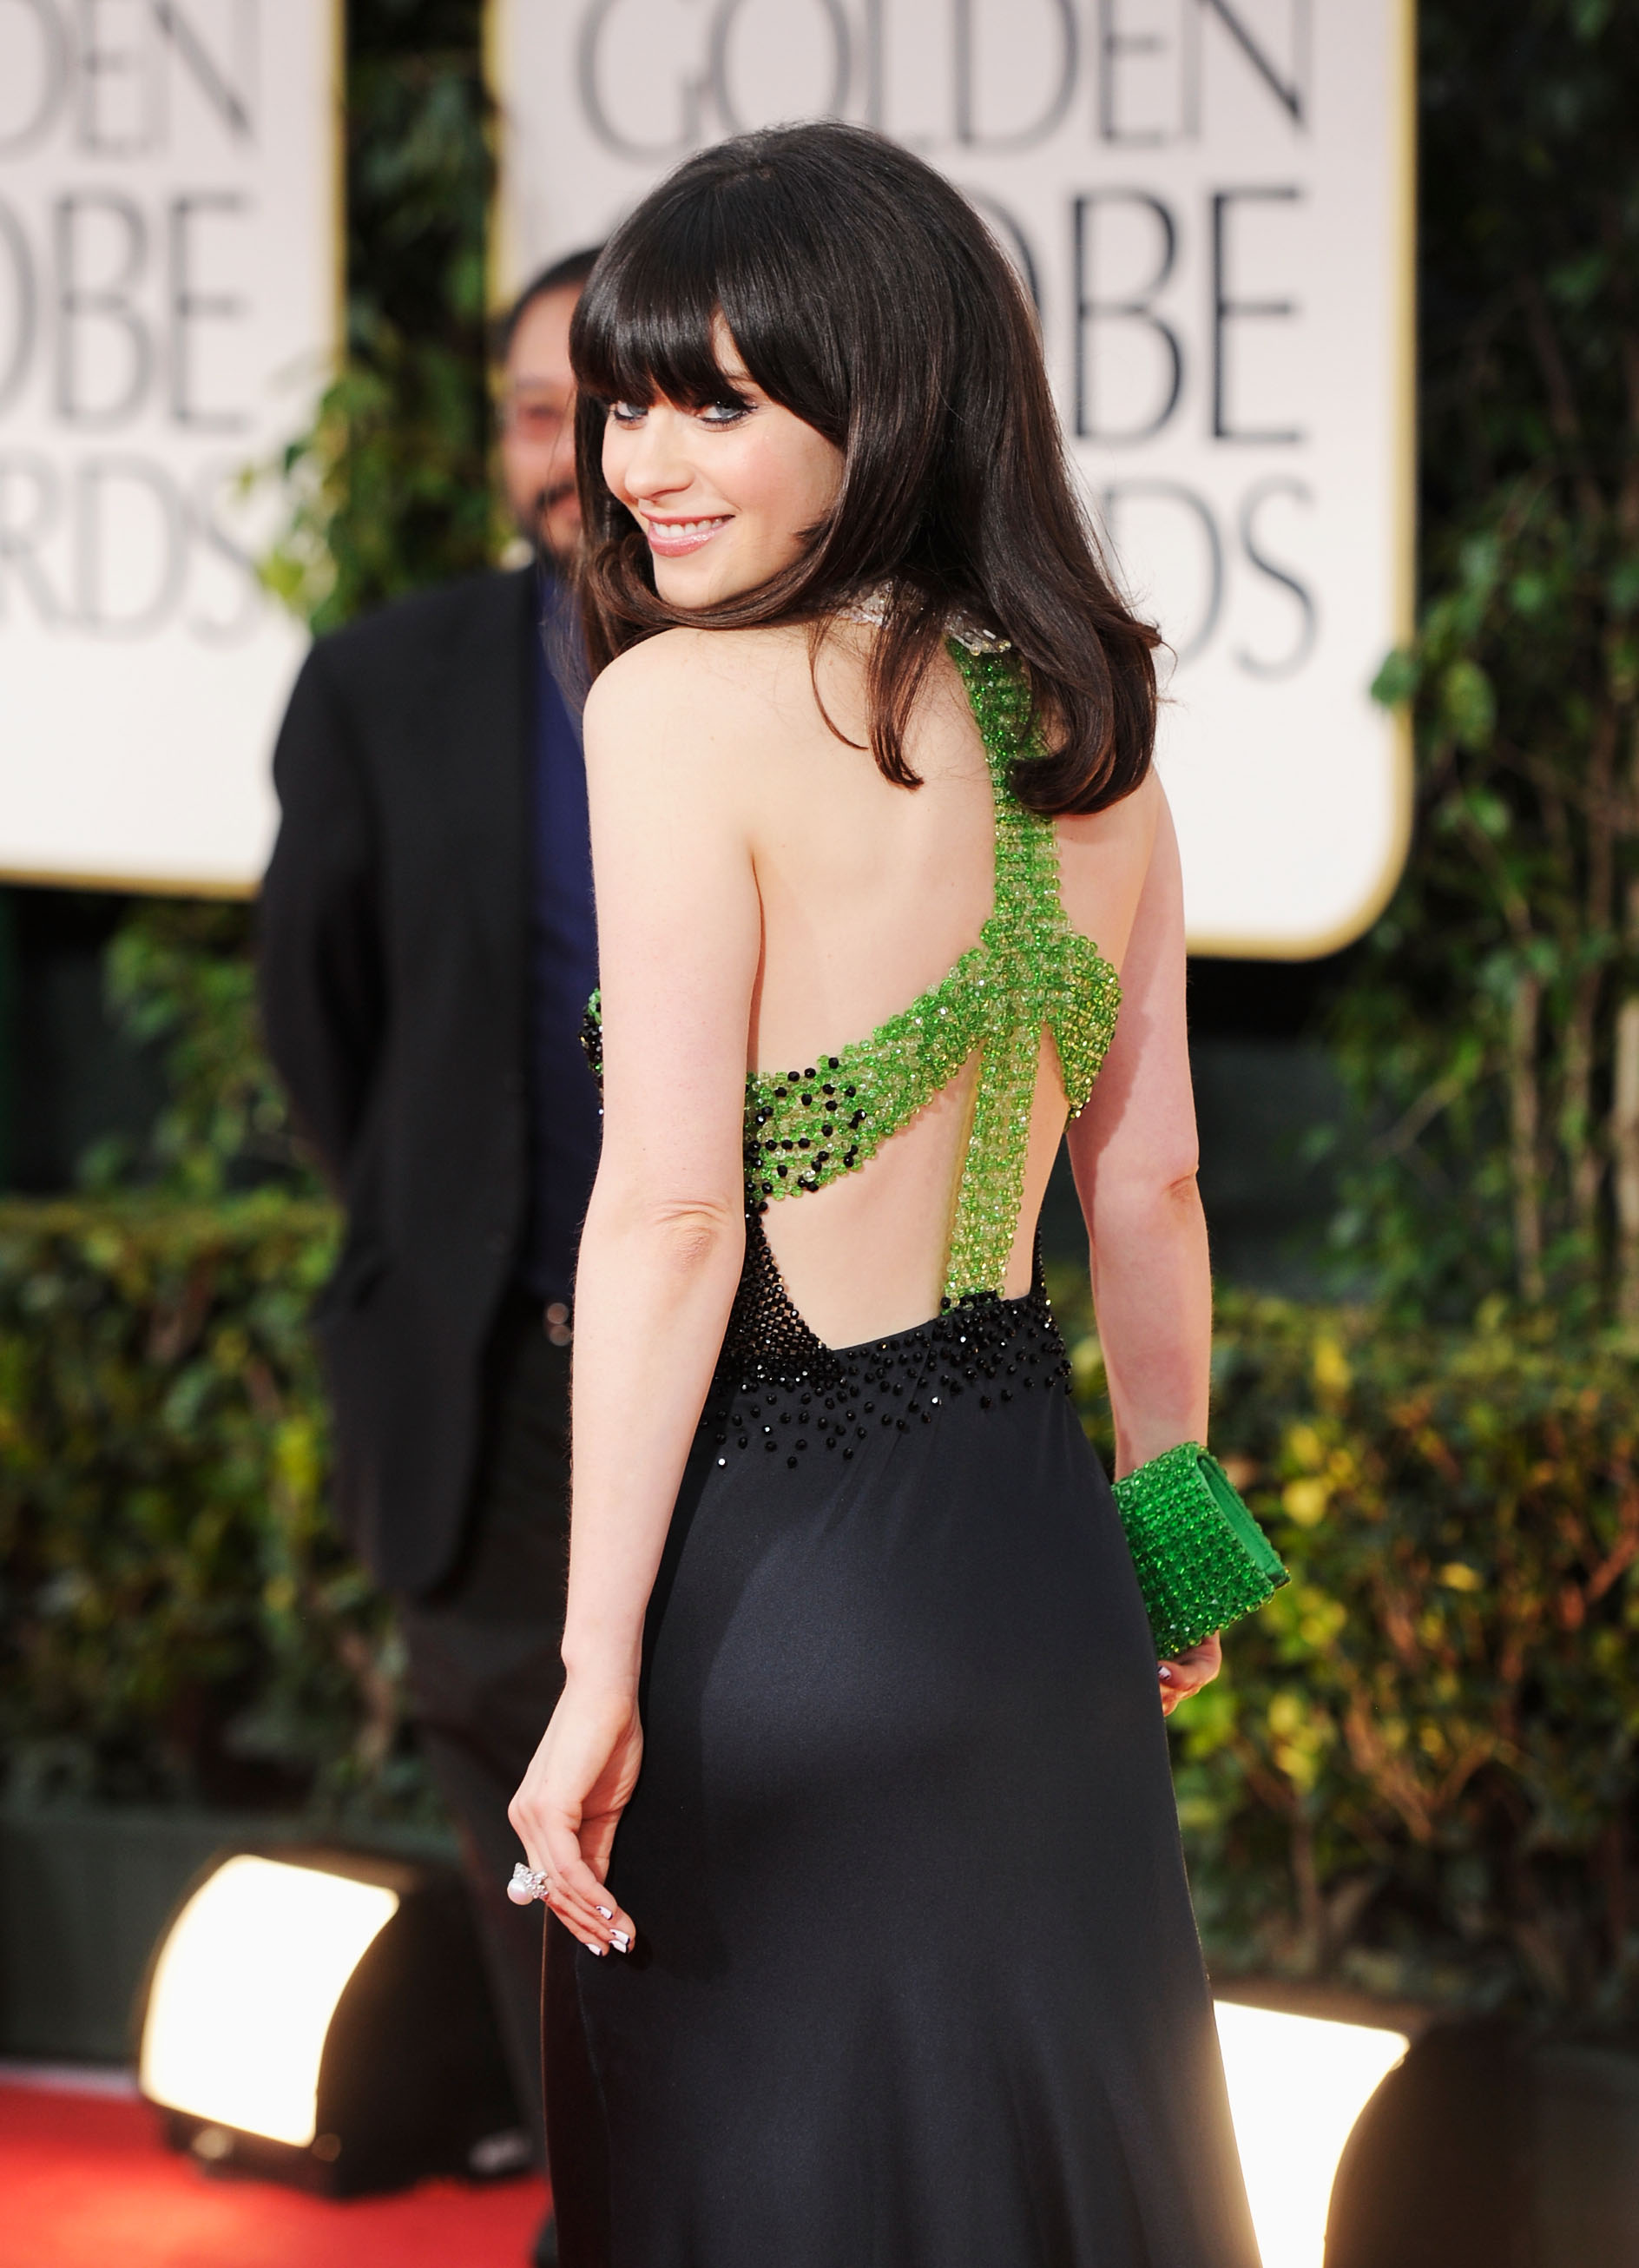 Zooey Deschanel in Prada at the Golden Globes.